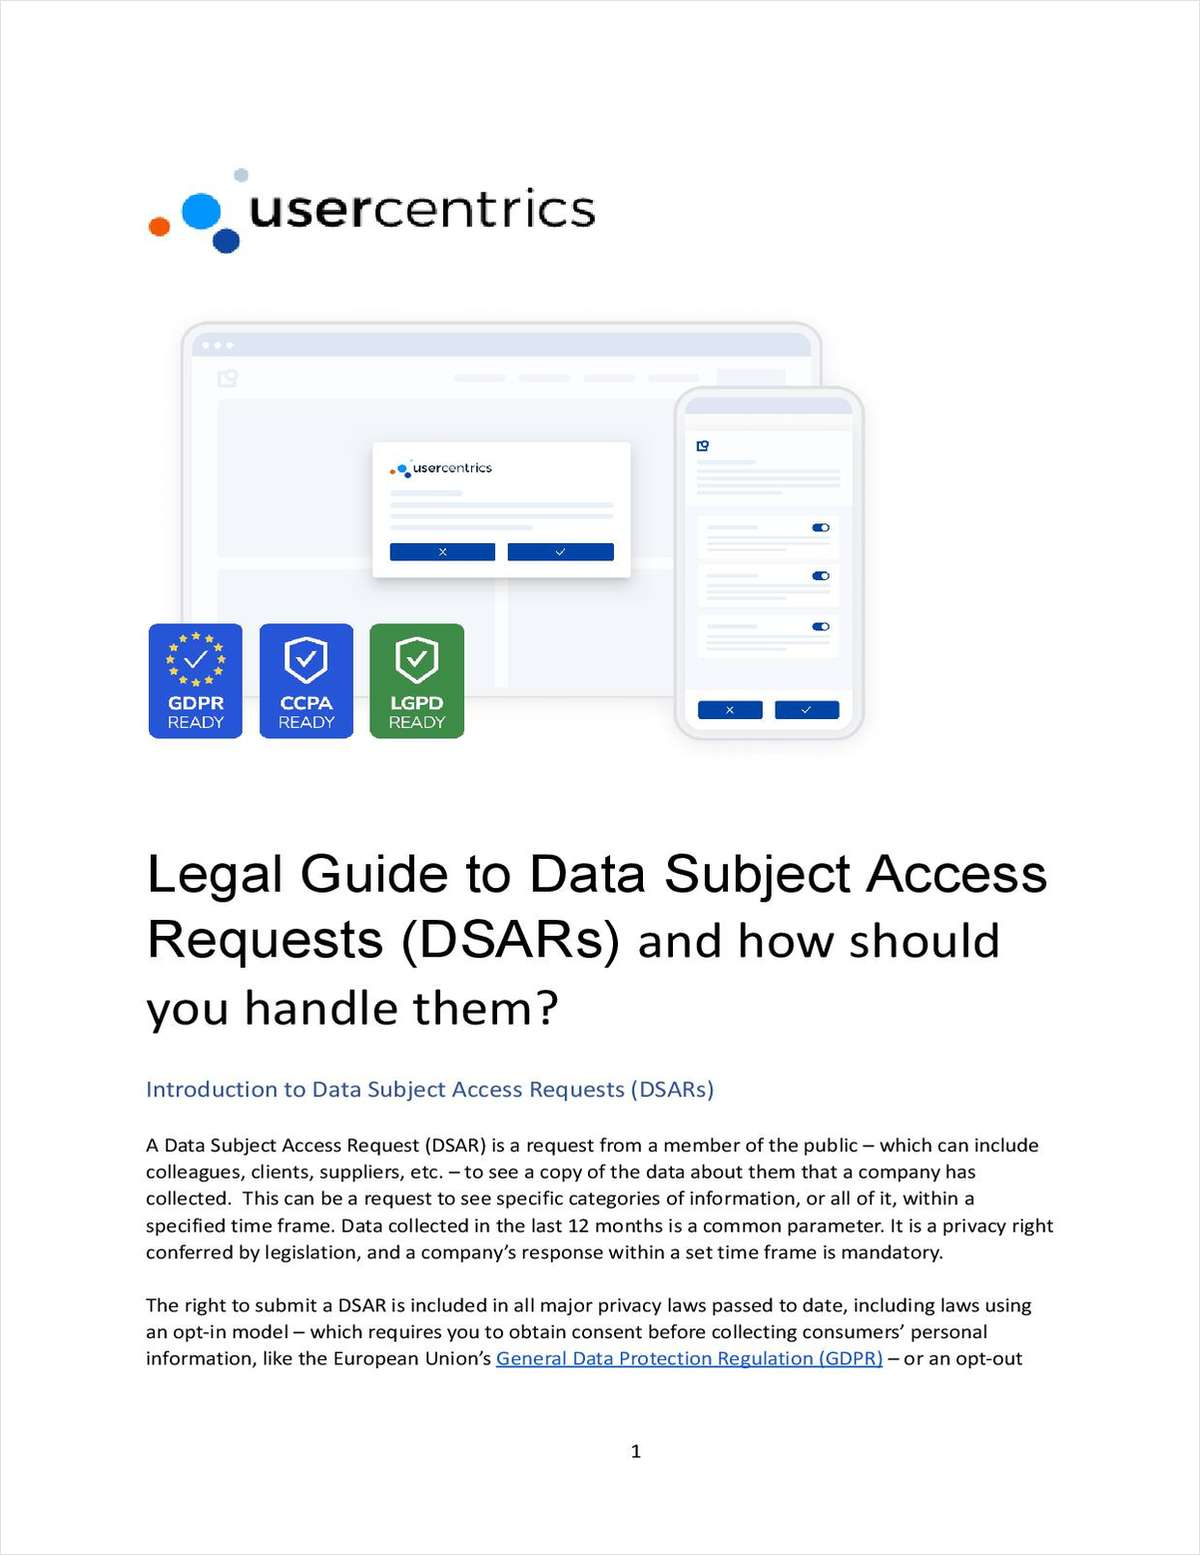 Following robust data protection protocols can make DSAR fulfilment easier and more likely to be legally compliant. This guide outlines the most common problems that organizations encounter when trying to respond to a DSAR, and recommendations on how to improve your fulfillment processes and policies to remain compliant.